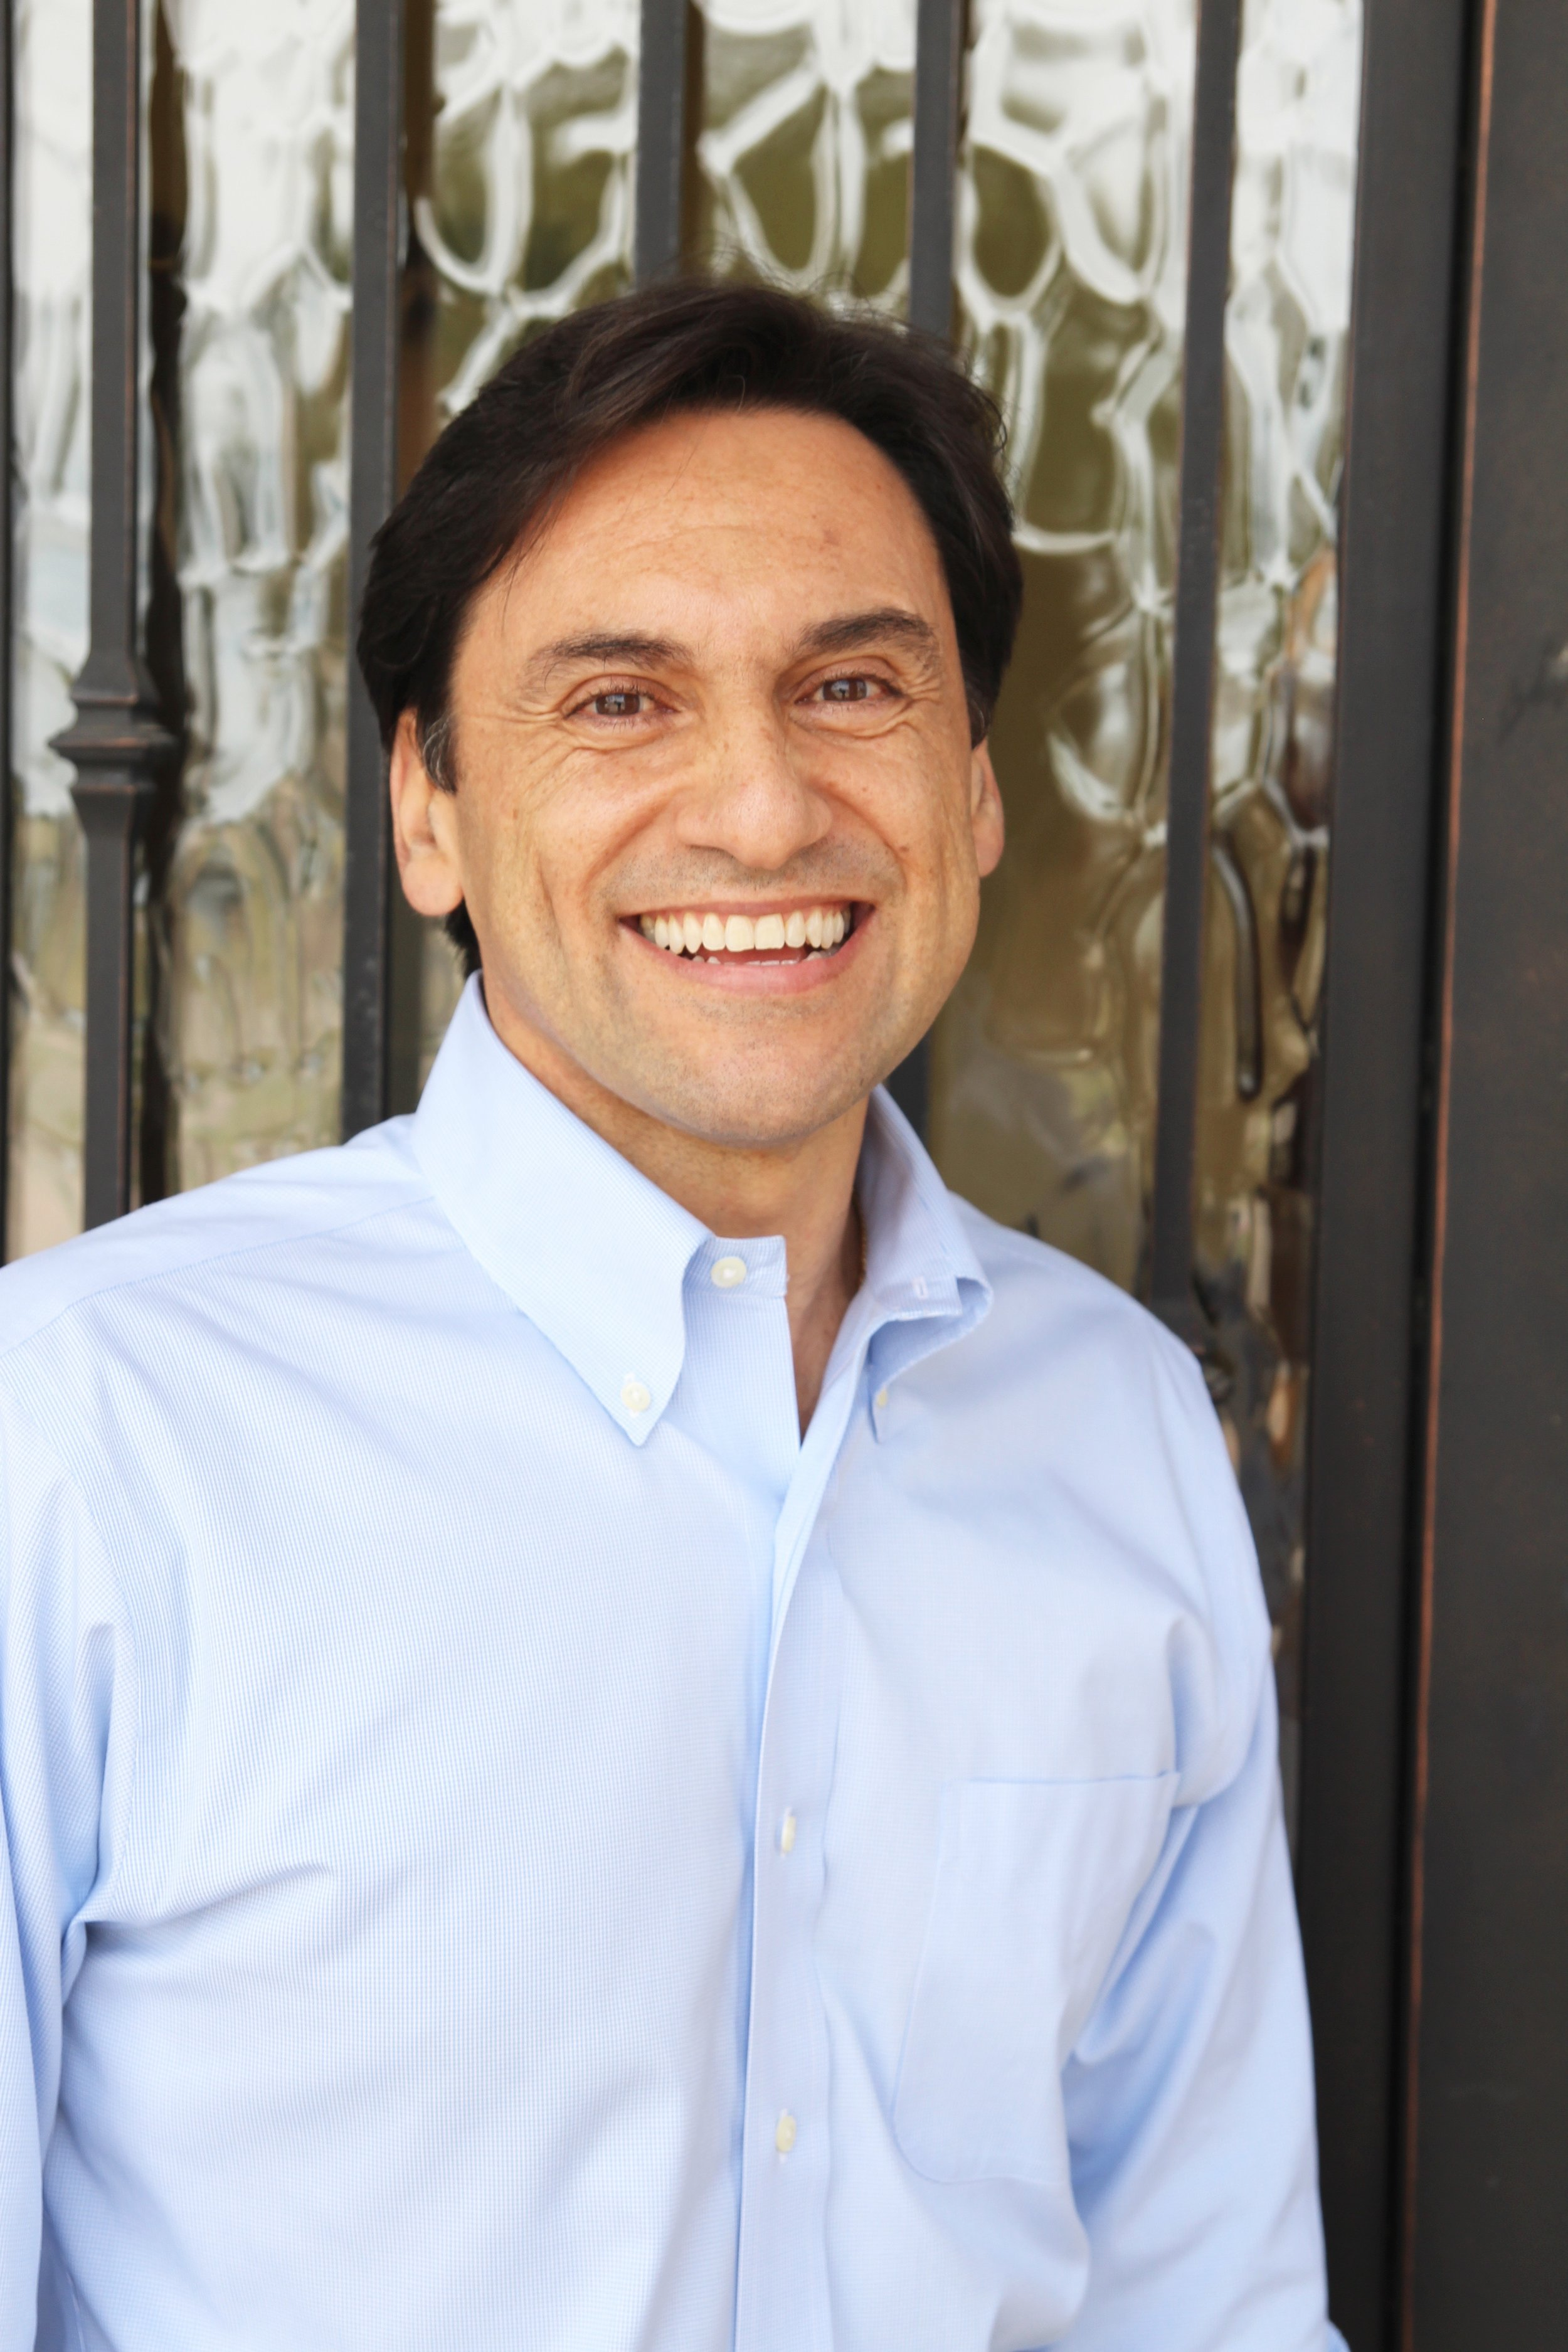 Dr. Ernest De Paoli - With over 30 years experience, Dr. De Paoli's commitment to innovative, personalized patient care makes him one of Frisco's leading dentists.